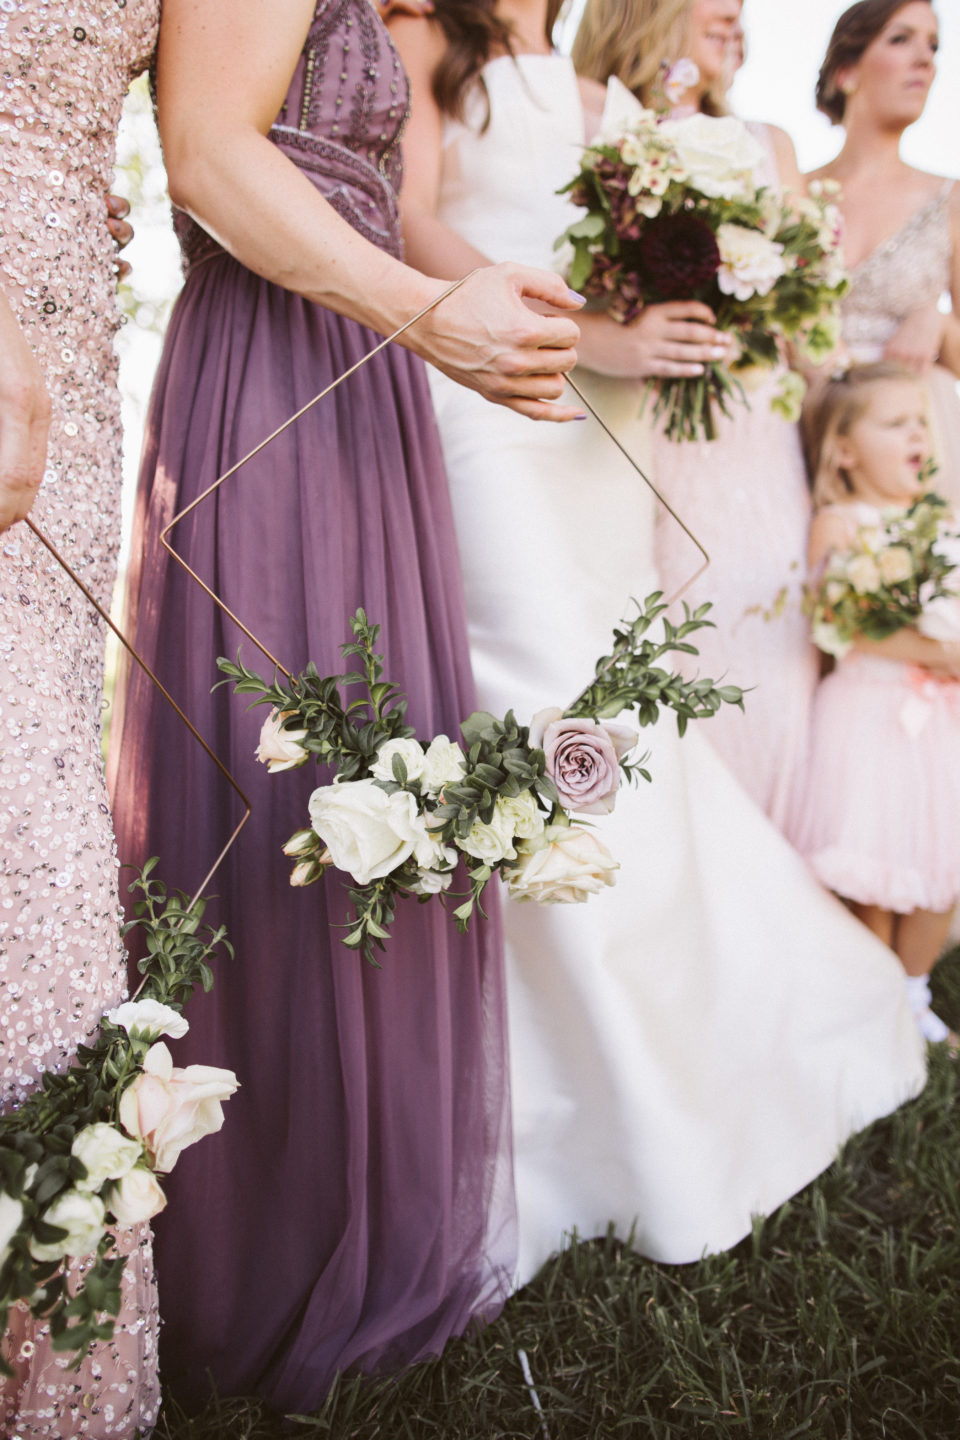 Unique bridesmaid florals